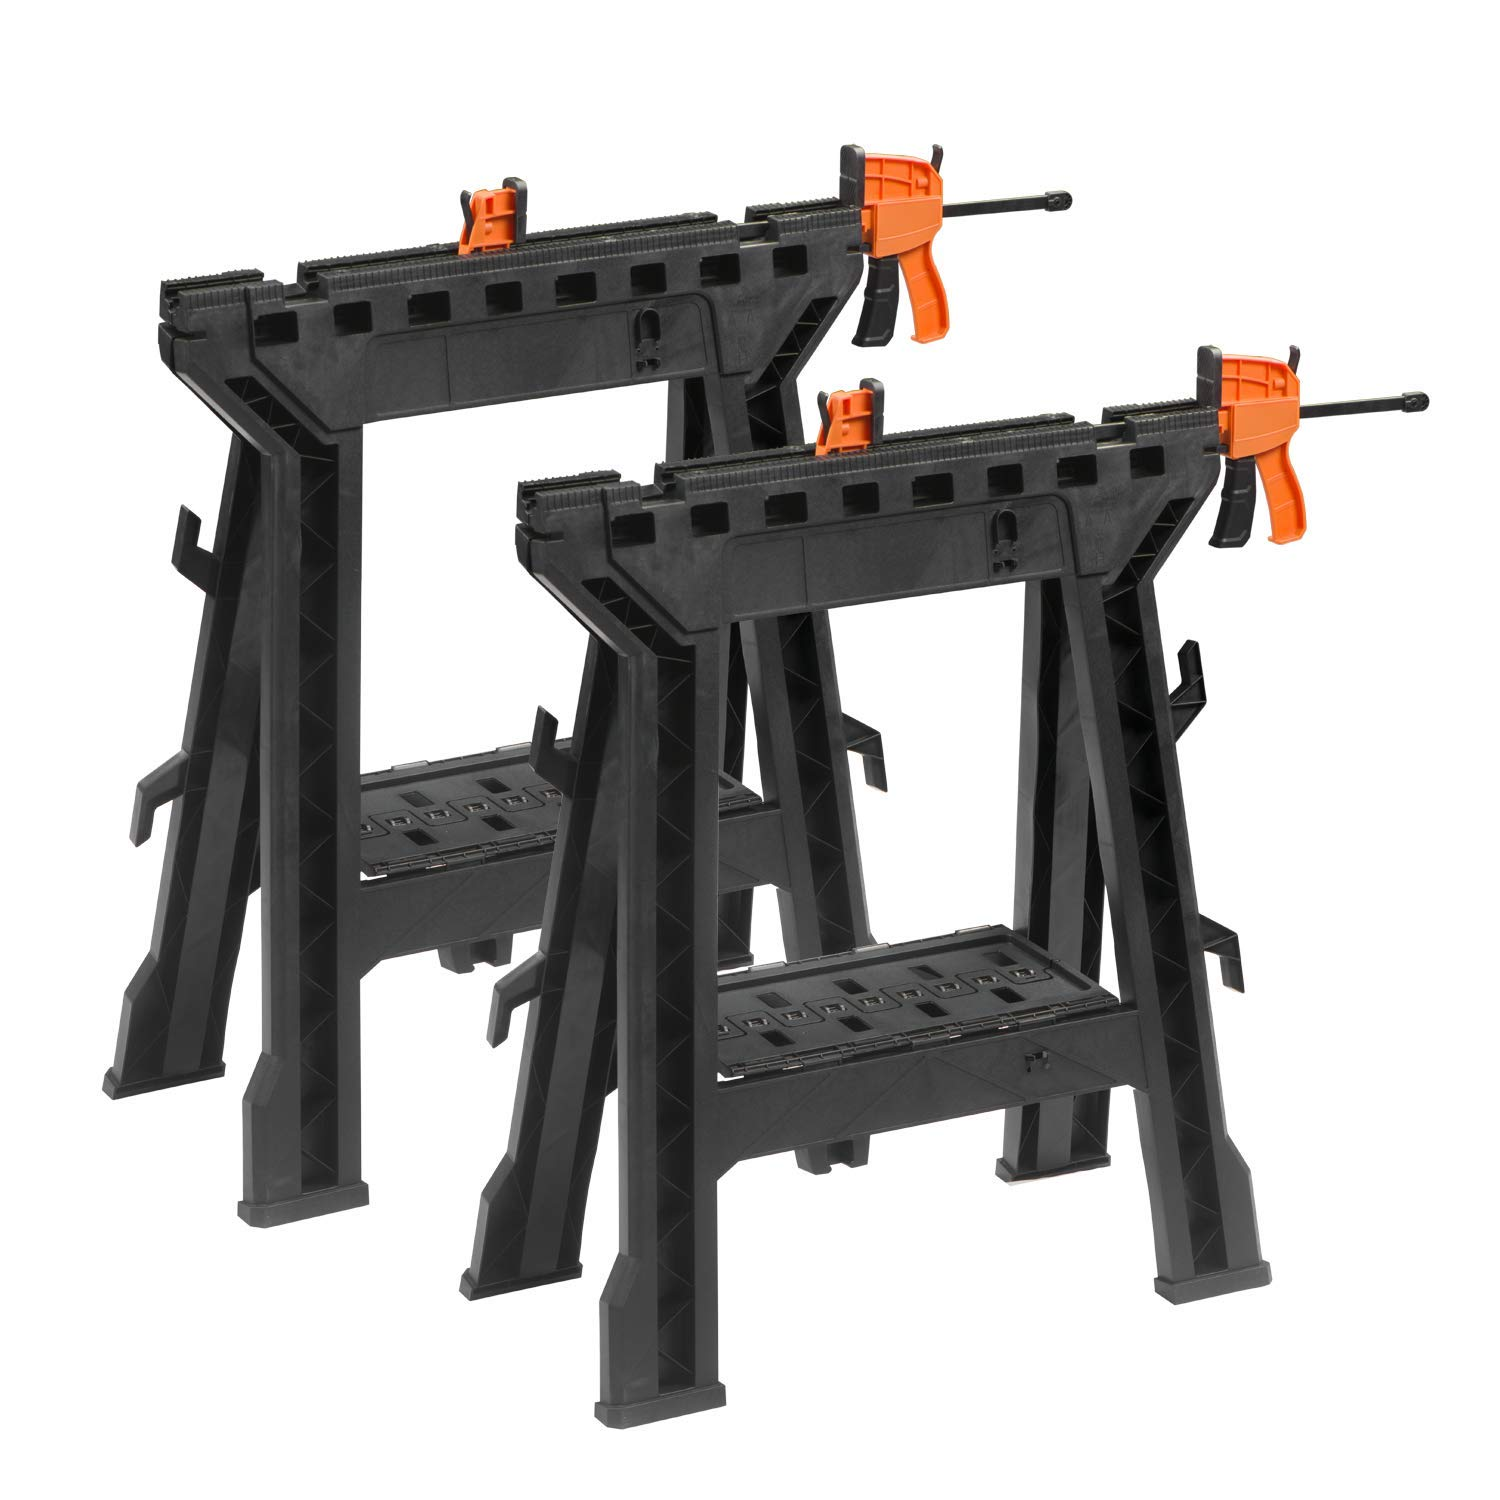 HYD-Parts 2 PCS Clamping Sawhorse Pairs with Bar Clamps, Built-in Shelf and Cord Hooks DIY Tools